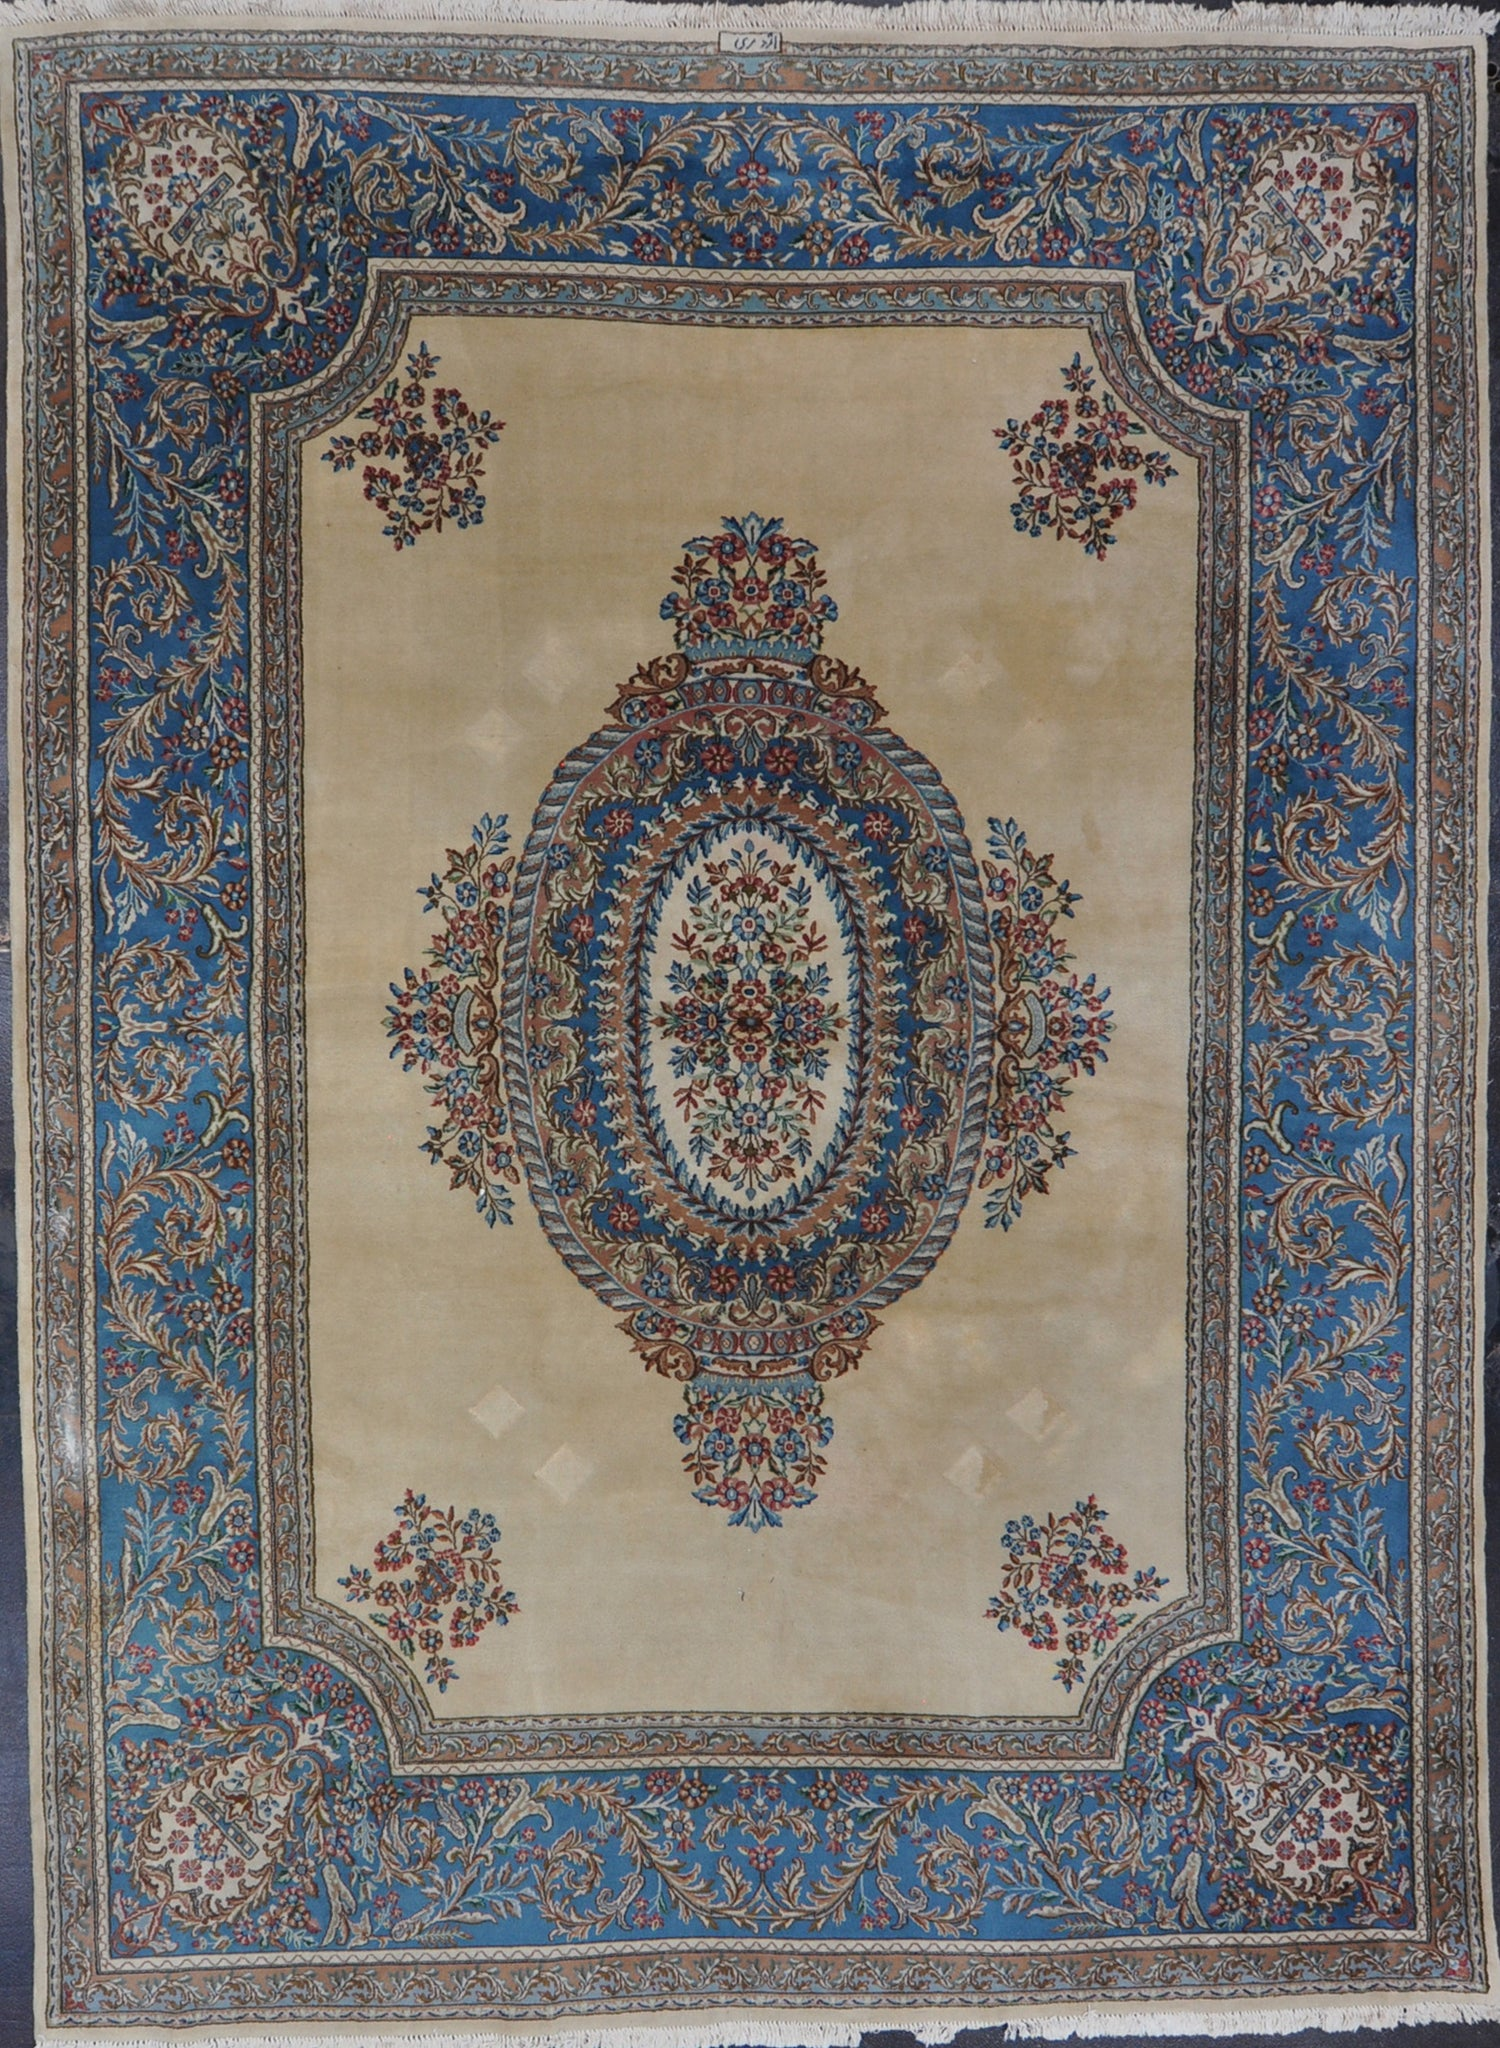 Rug ID 1070-C 9.9x13.2 Antique Persian Kerman